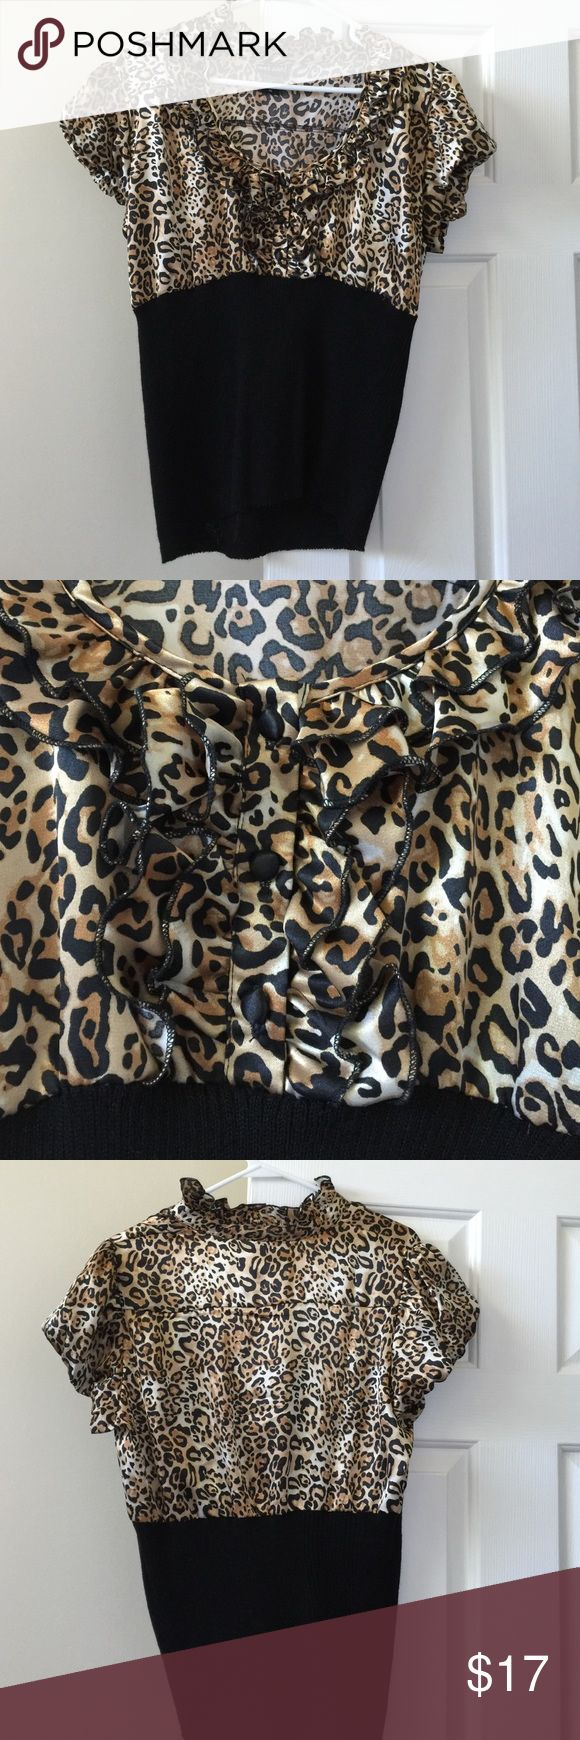 Leopard Top Classic leopard and black top with puckered sleeves and Ruffles and buttons on the chest. Very flattering shirt on, and is a great piece to dress up your outfit. In excellent condition. From Wet Seal. Size XL but fits more like a L. Wet Seal Tops Blouses